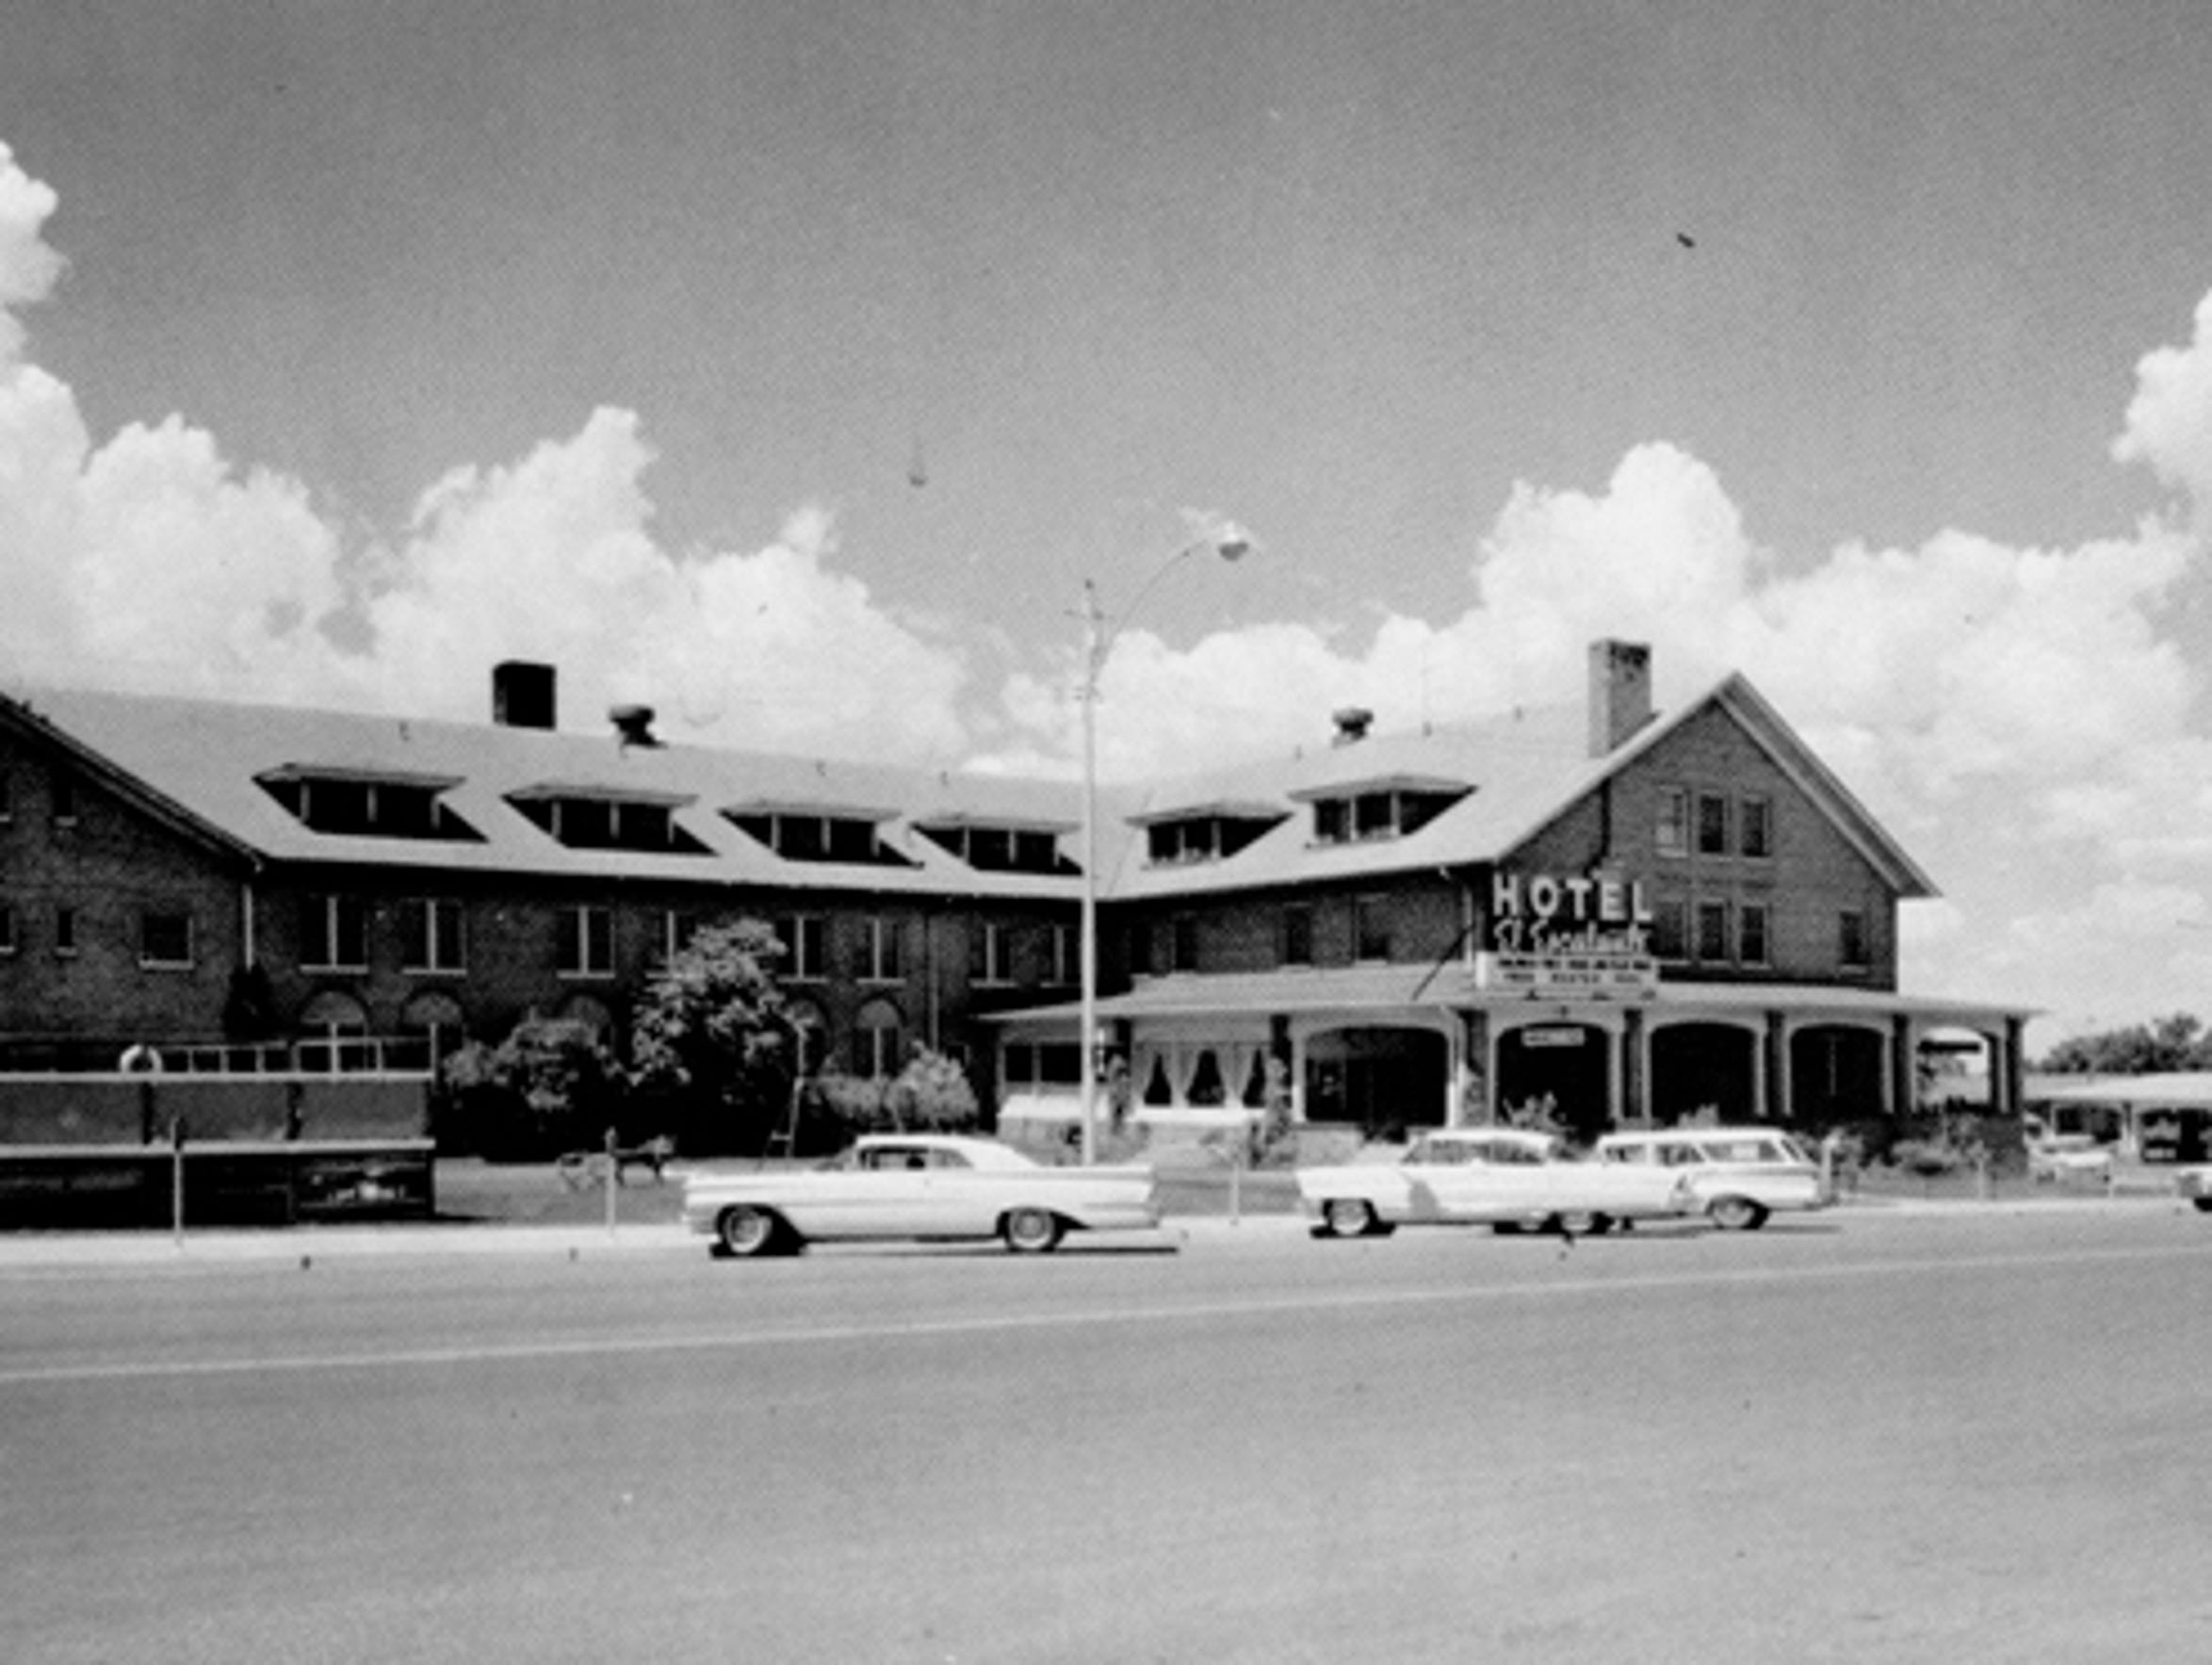 A historical image of the El Escalante Hotel.